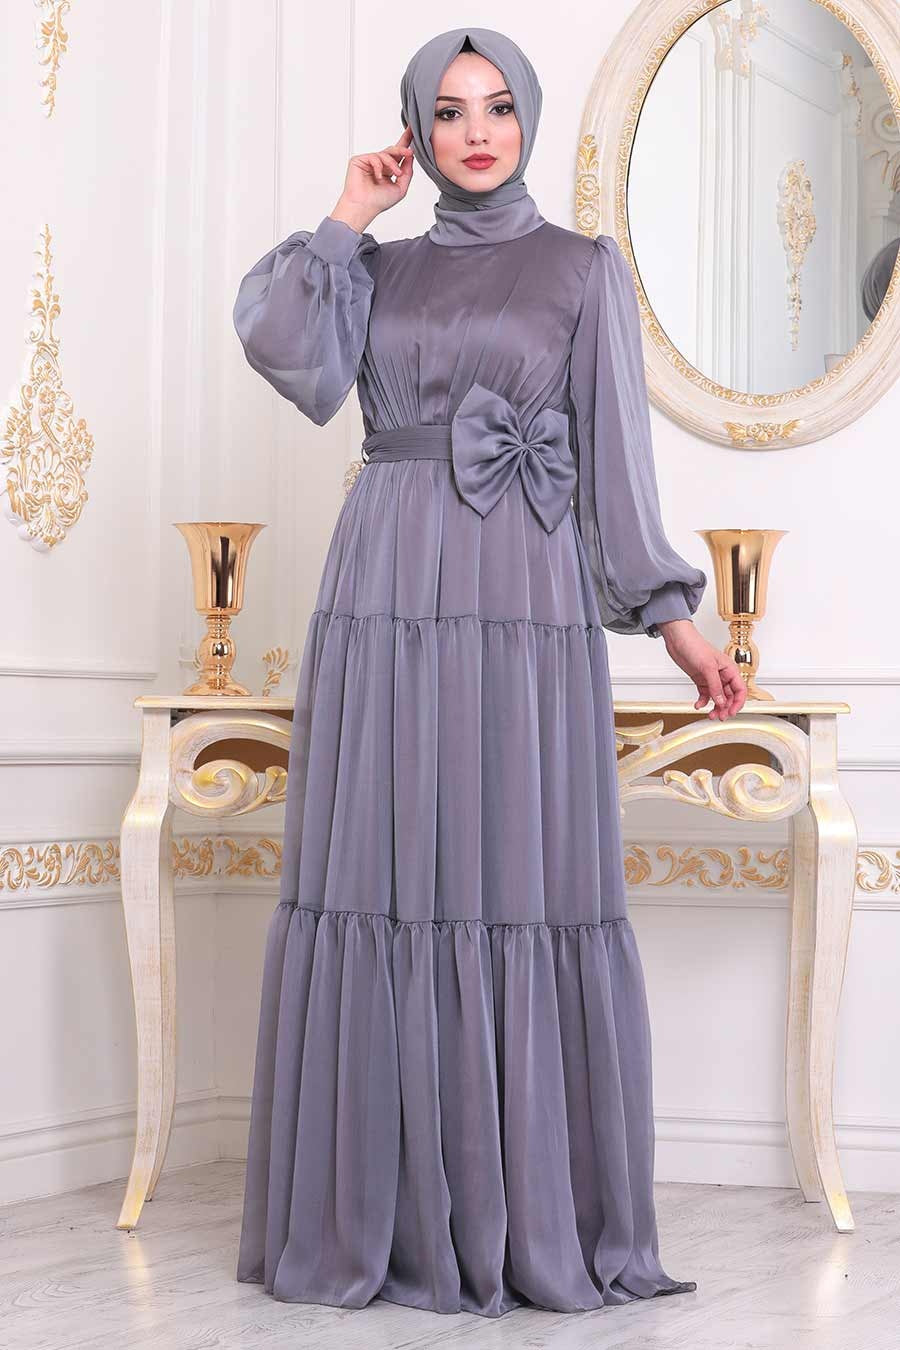 Women's Bow-tie Detail Lilac Modest Long Evening Dress